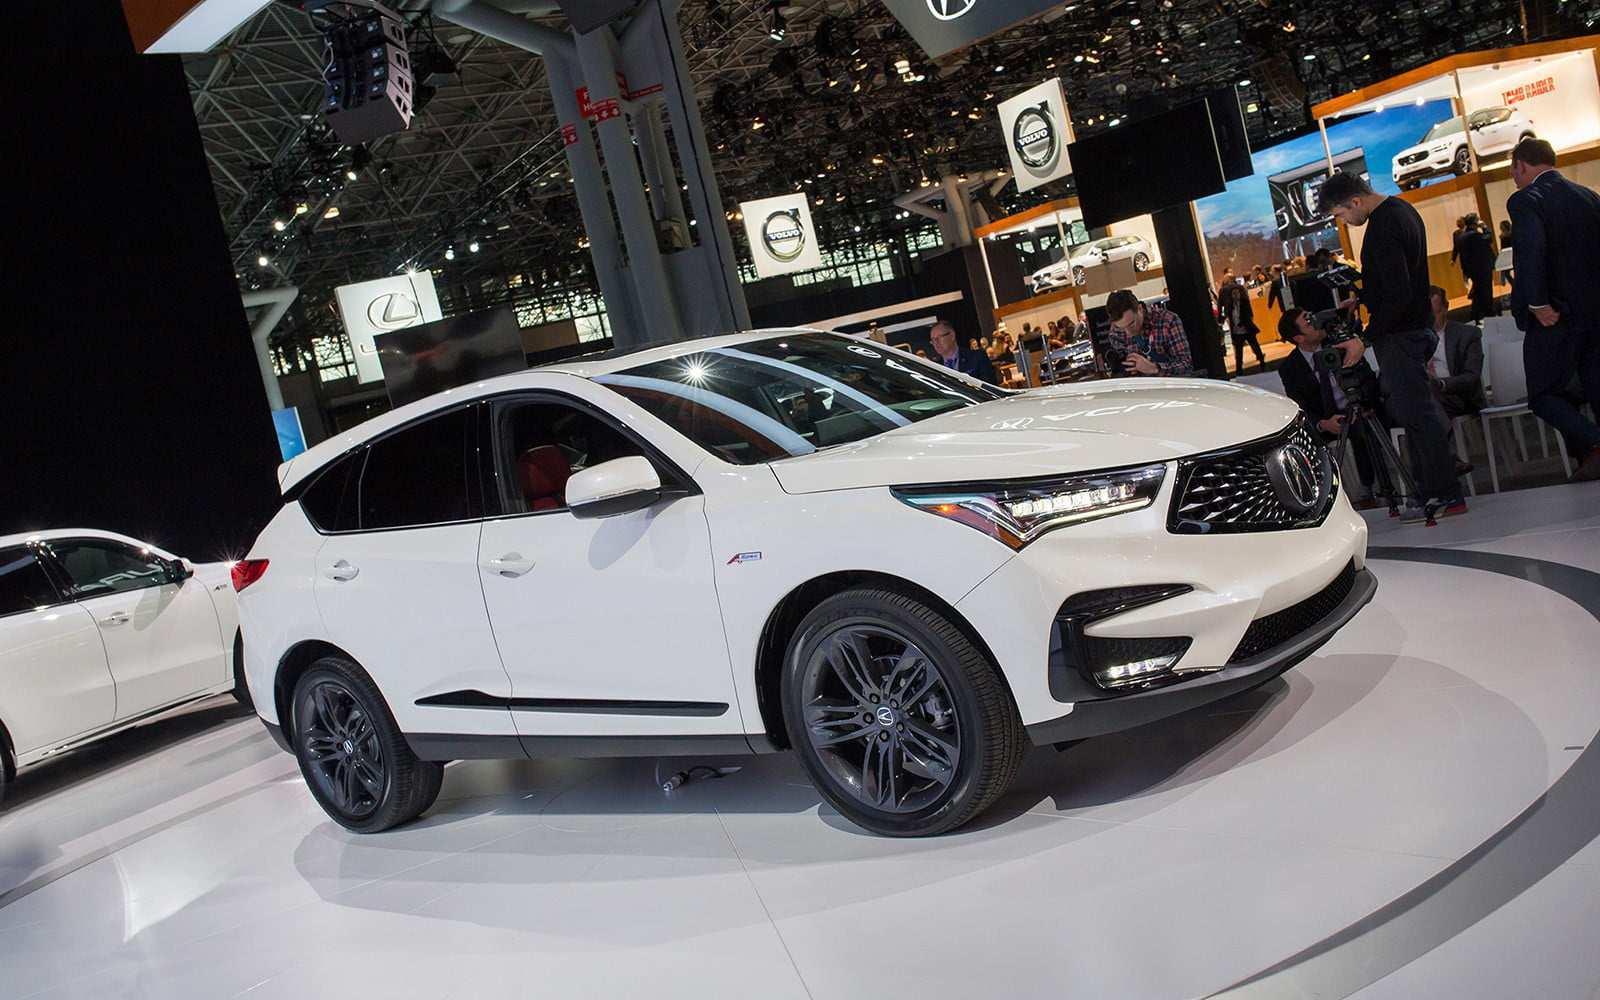 95 New 2019 Acura Zdx Images for 2019 Acura Zdx